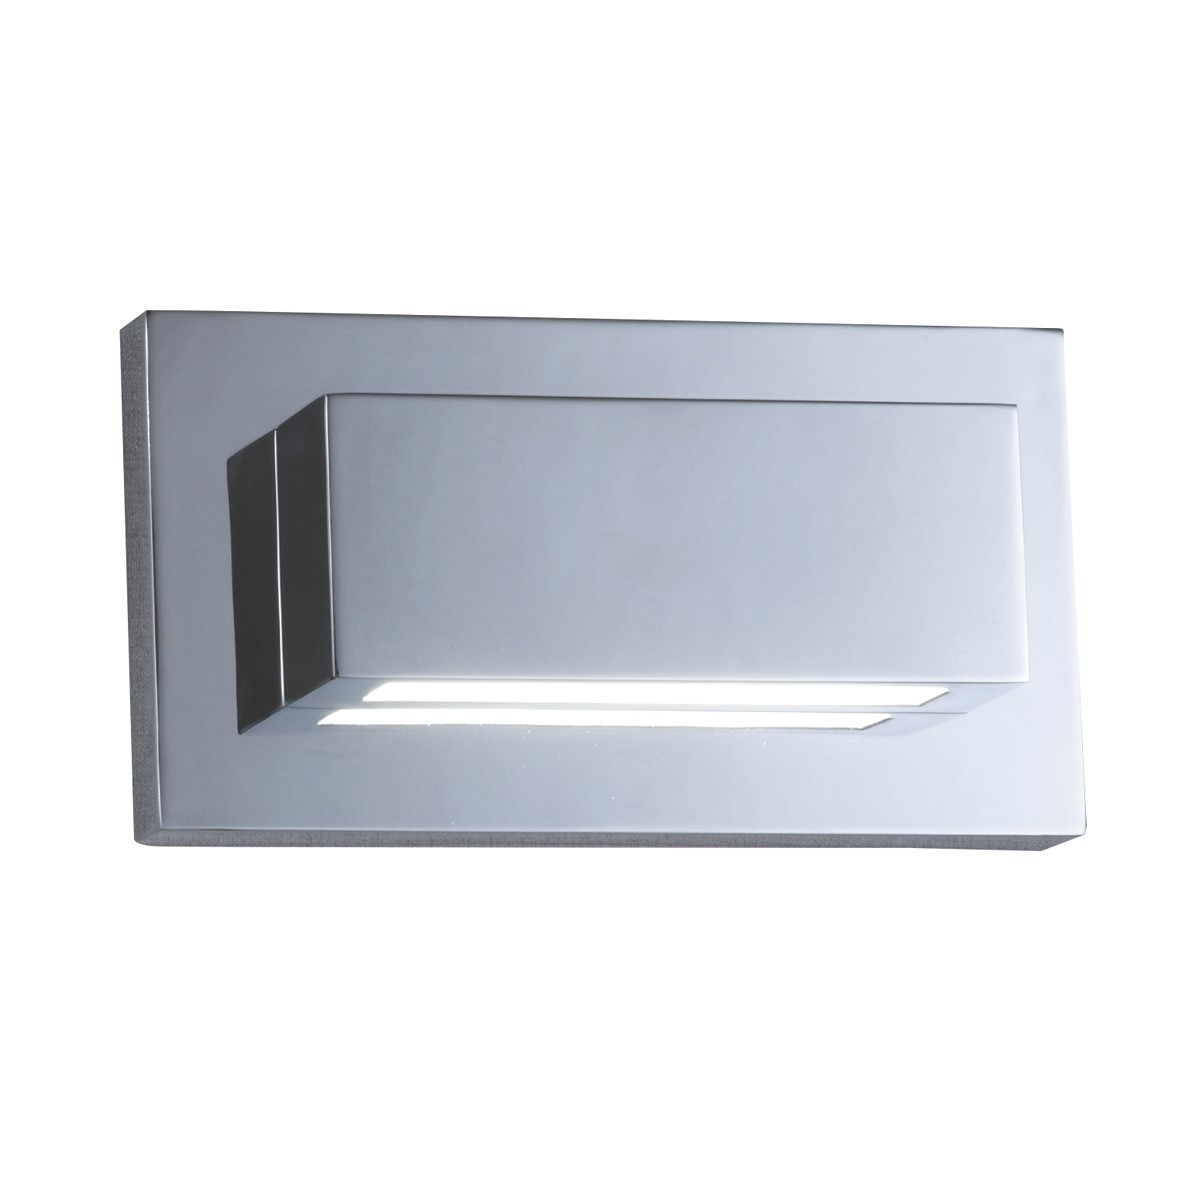 chrome 2 led oblong wall light with up down light 1752cc stanways stoves and lights. Black Bedroom Furniture Sets. Home Design Ideas